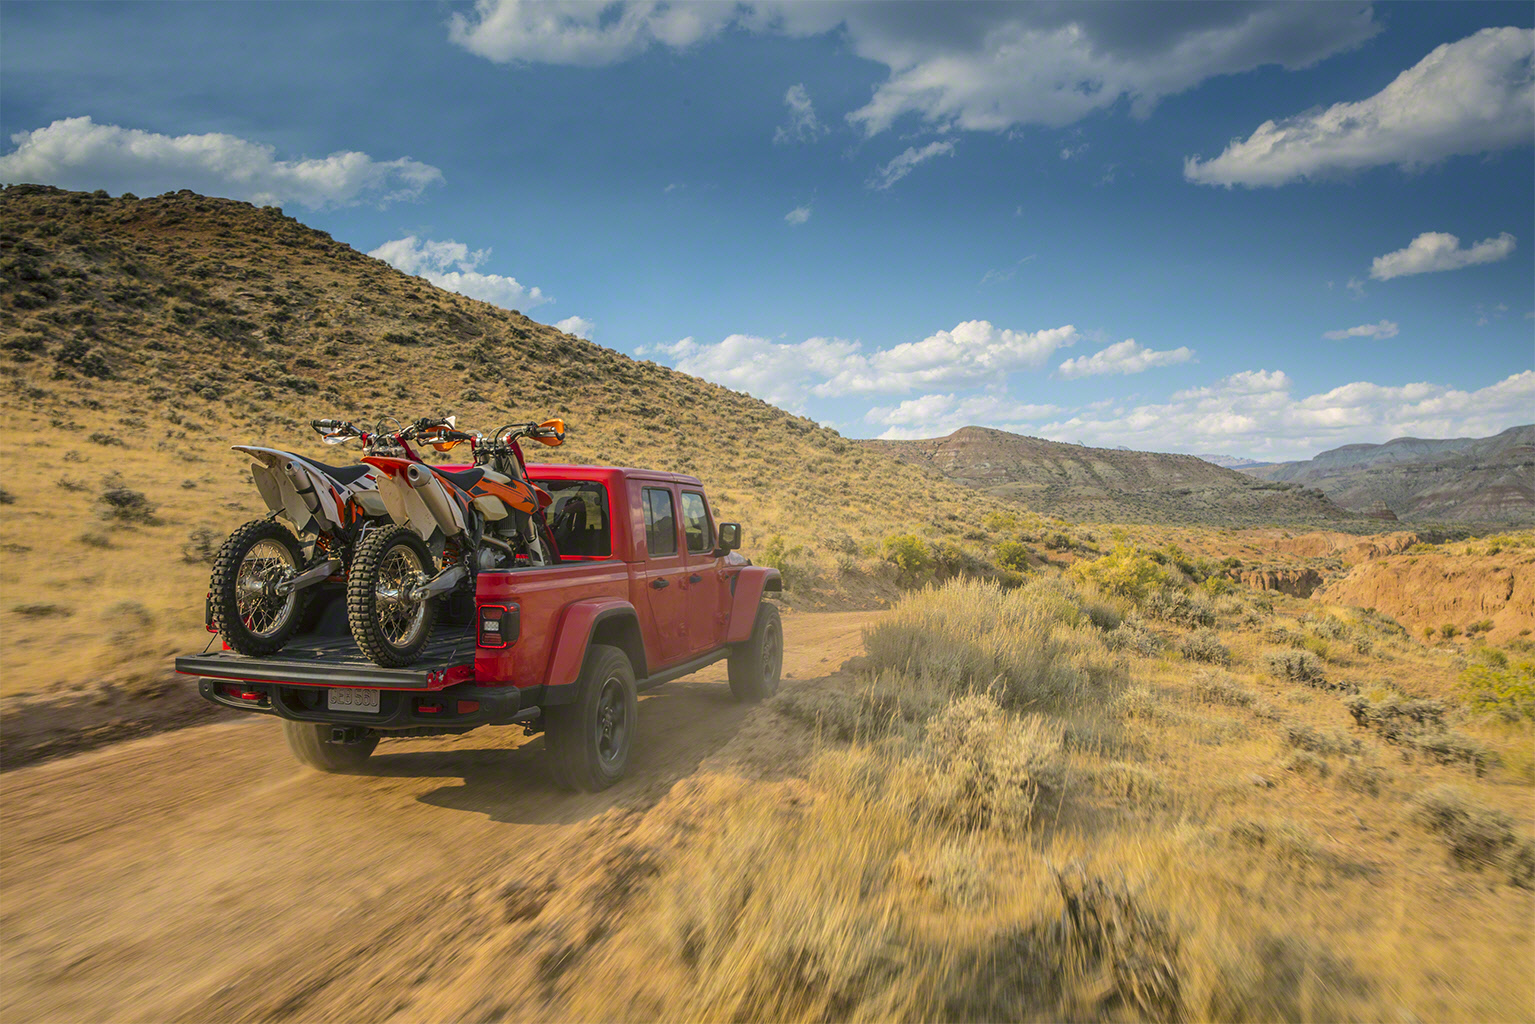 2020 Jeep Gladiator dirt bikes bed